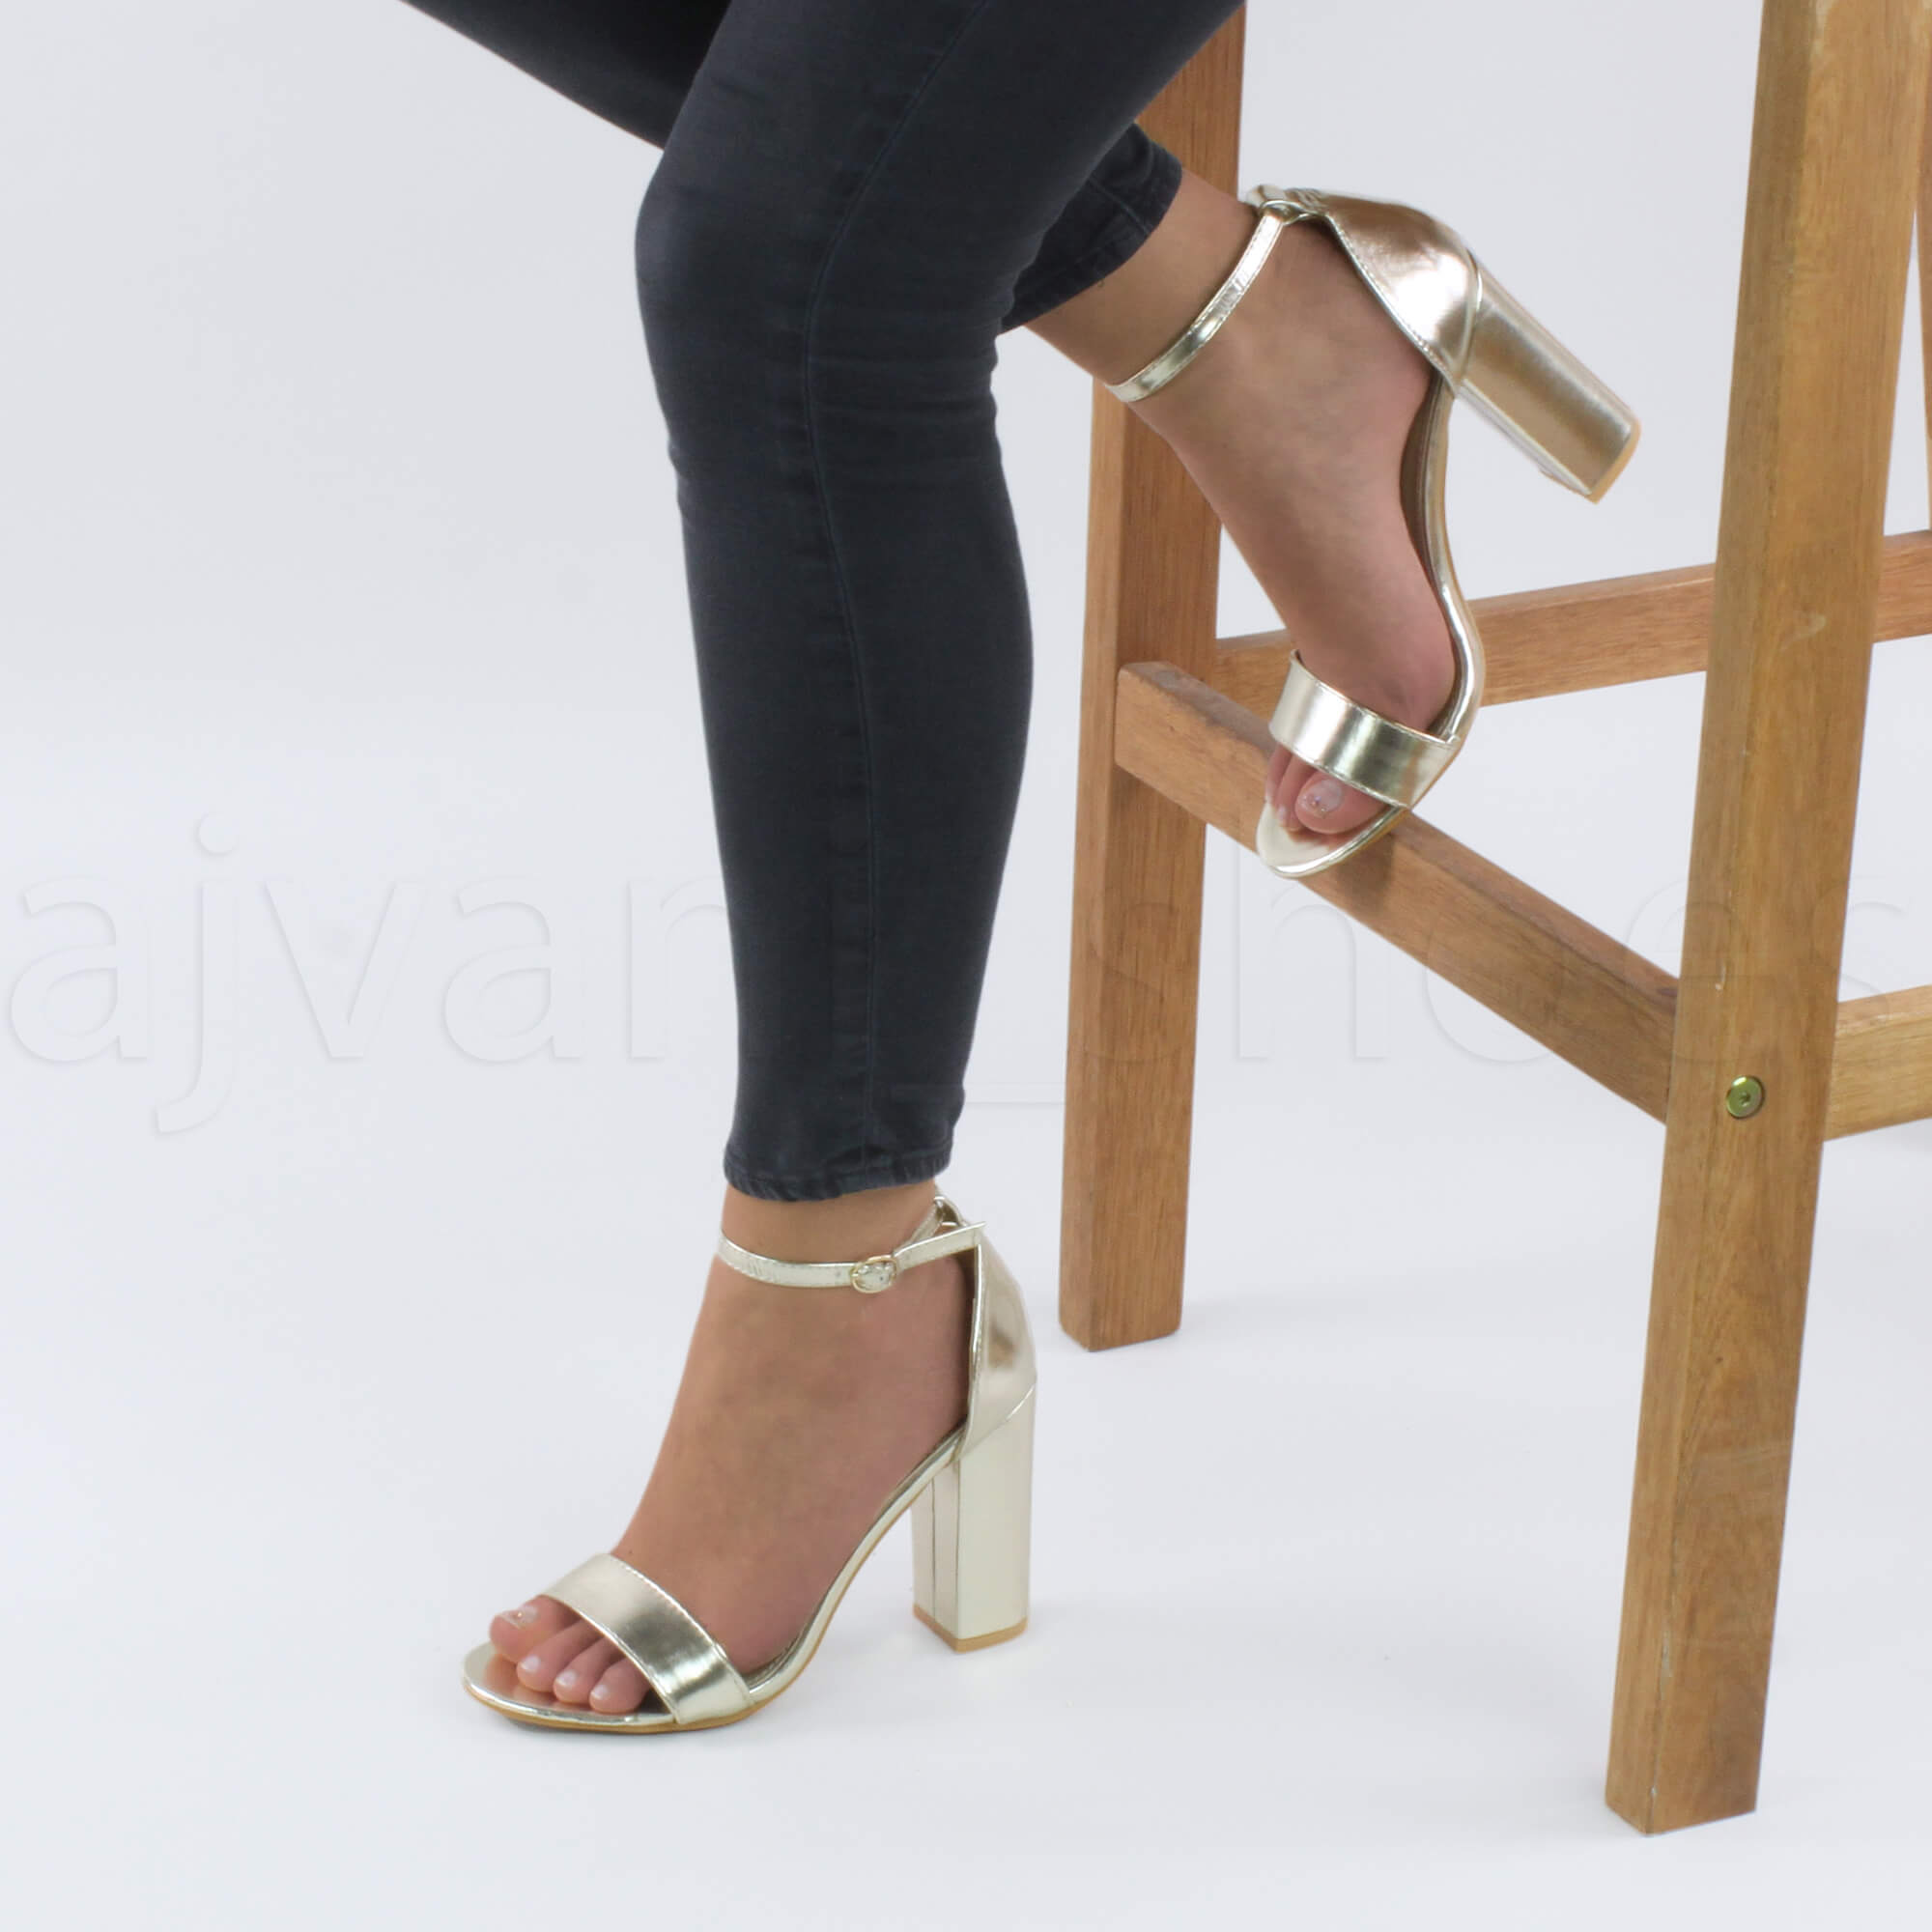 WOMENS-LADIES-BLOCK-HIGH-HEEL-ANKLE-STRAP-PEEP-TOE-STRAPPY-SANDALS-SHOES-SIZE thumbnail 70